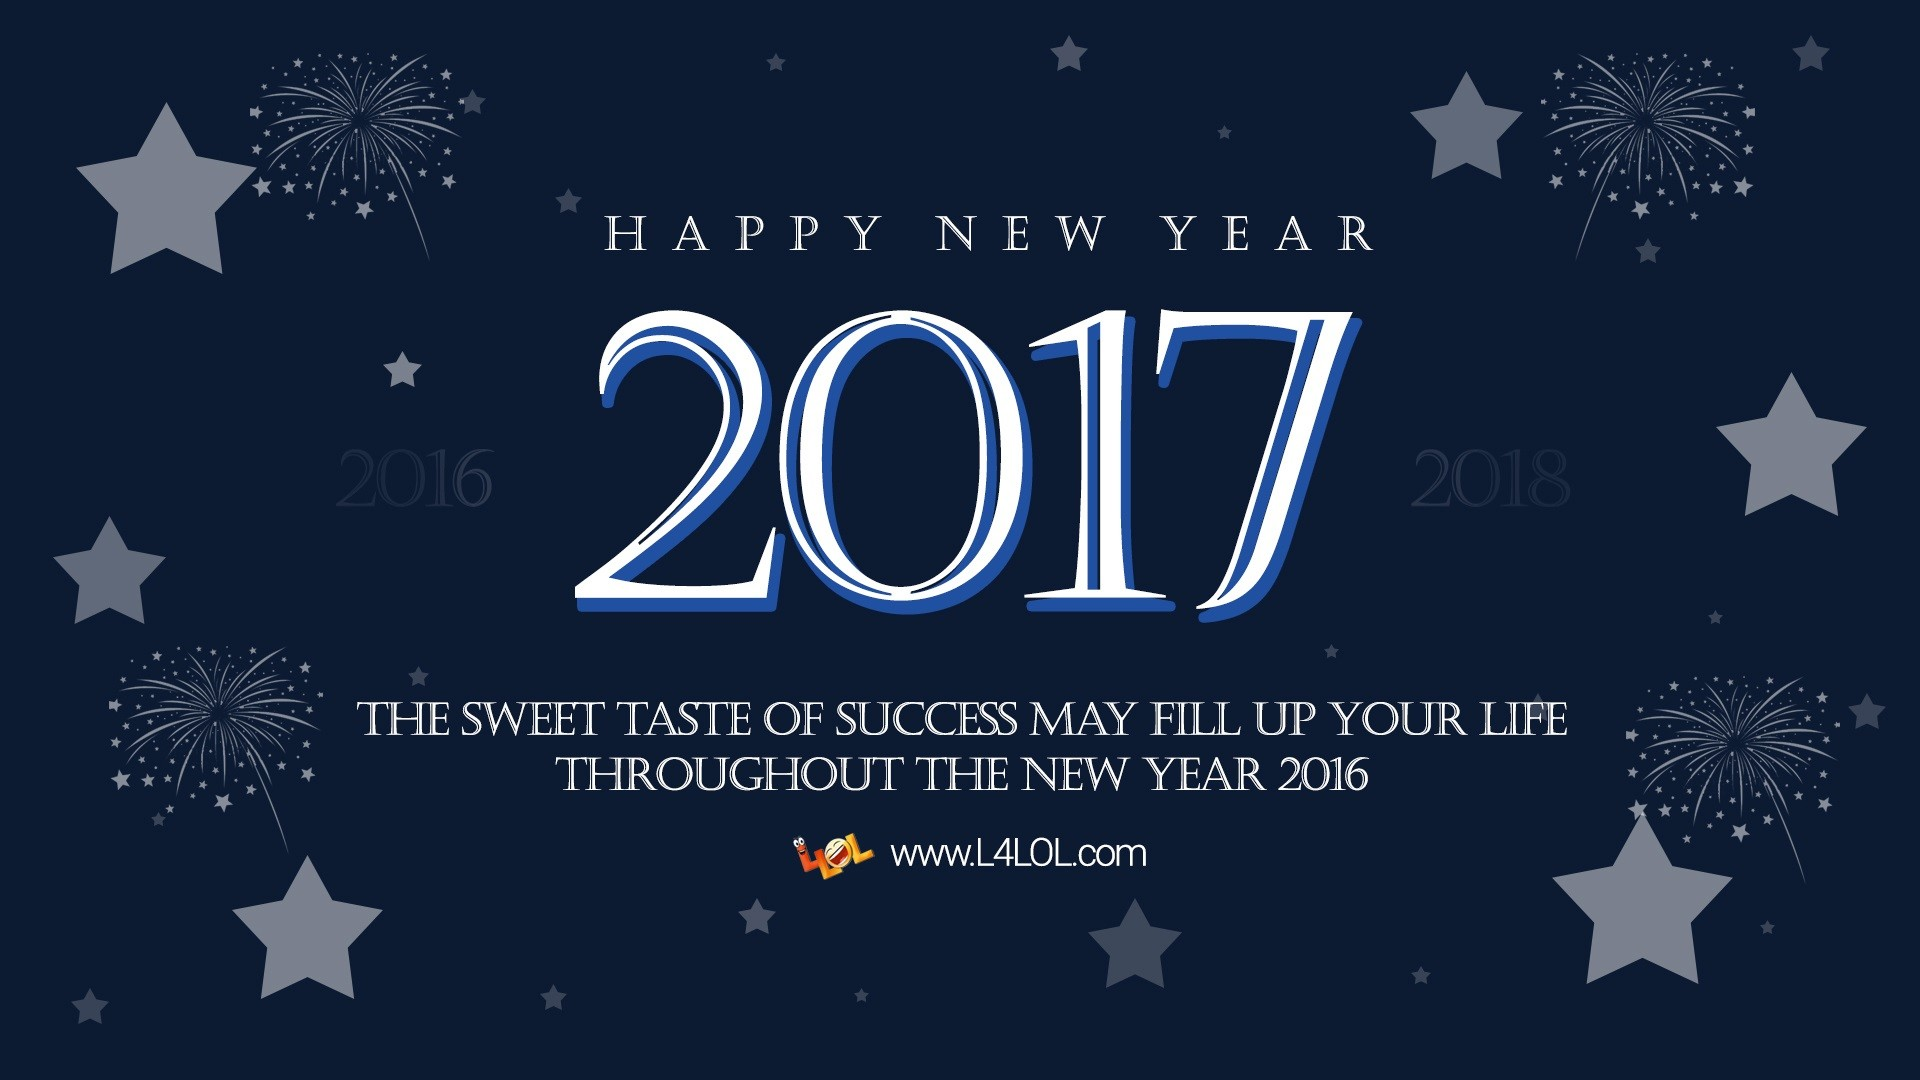 #HappyNewYear2017 Happy New Year 2017 Quotes Greeting Cards Pictures for  Lover Family Friends – http